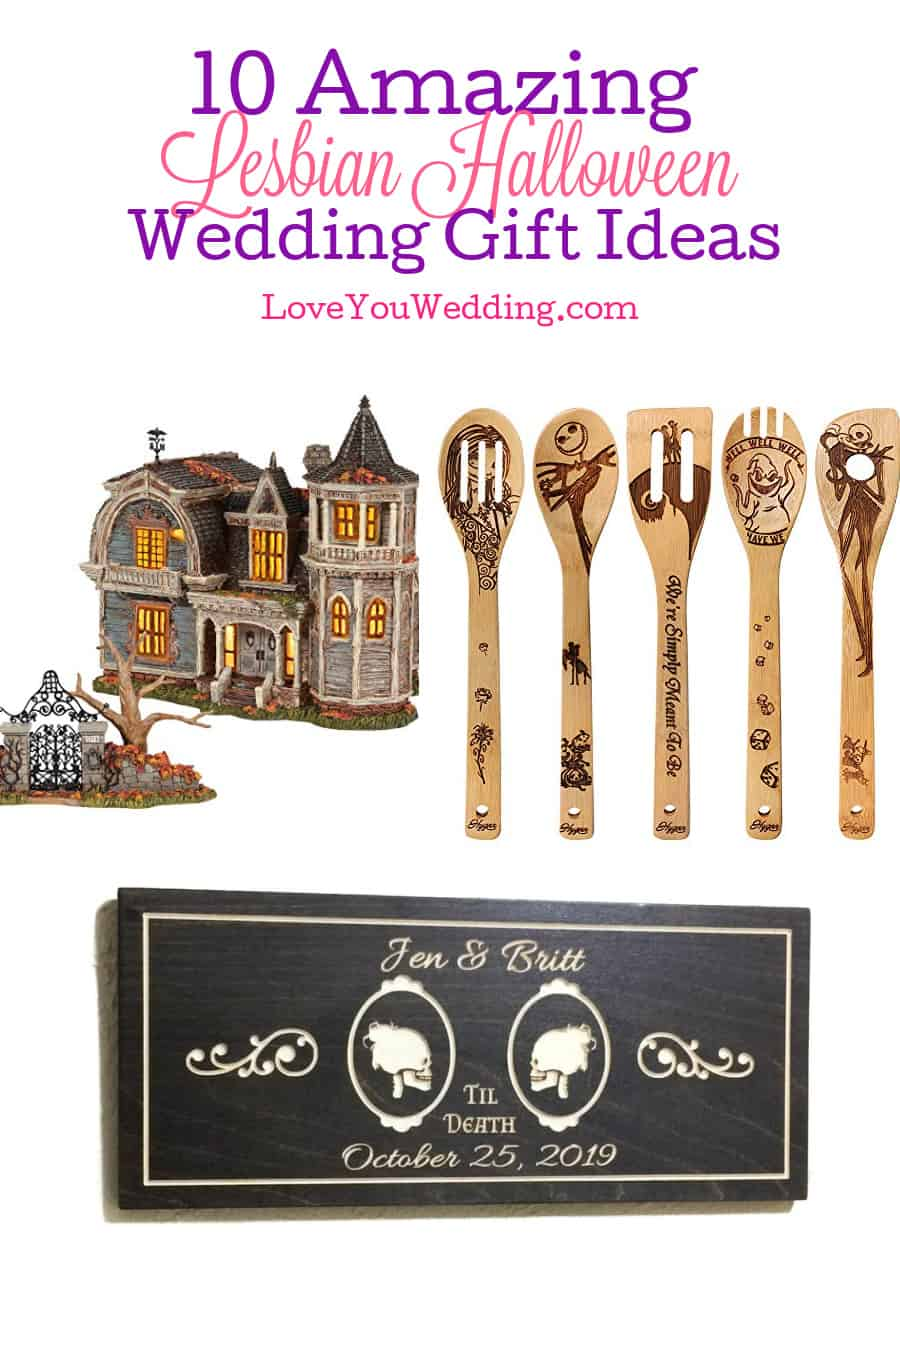 Looking for some super cute lesbian Halloween wedding gifts? Check out ten that we think are just perfect for two brides!